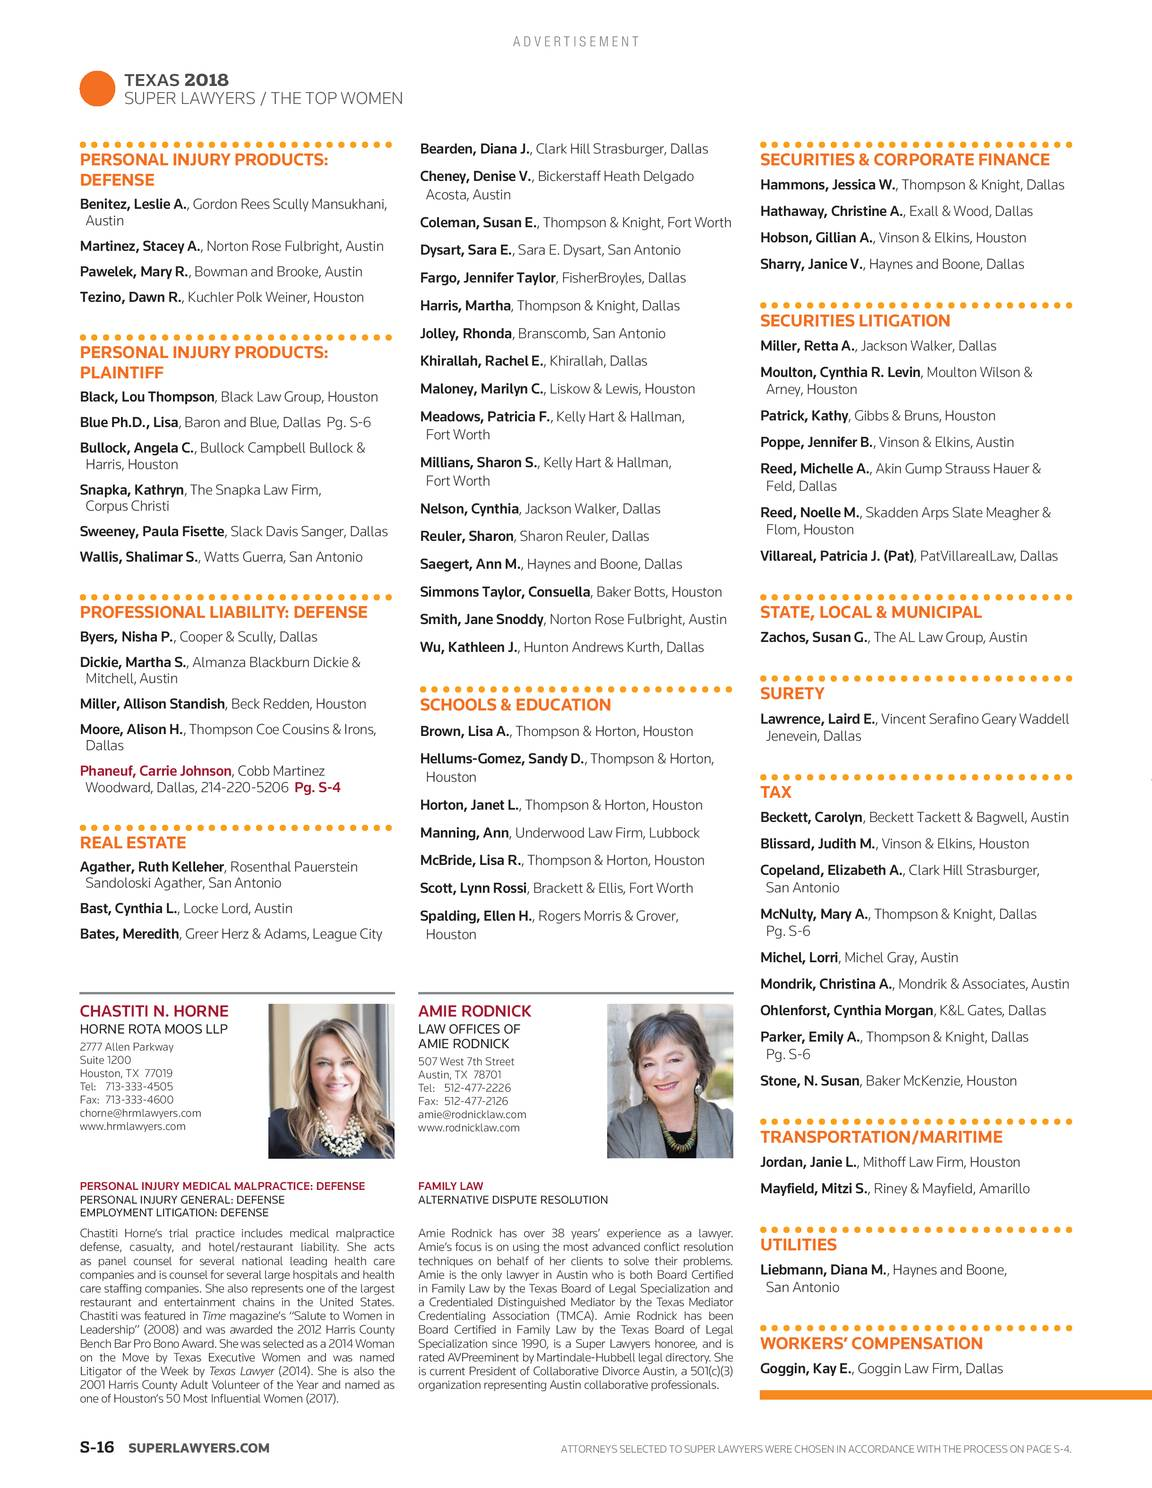 Super Lawyers - The Top Women Attorneys in Texas 2019 - page